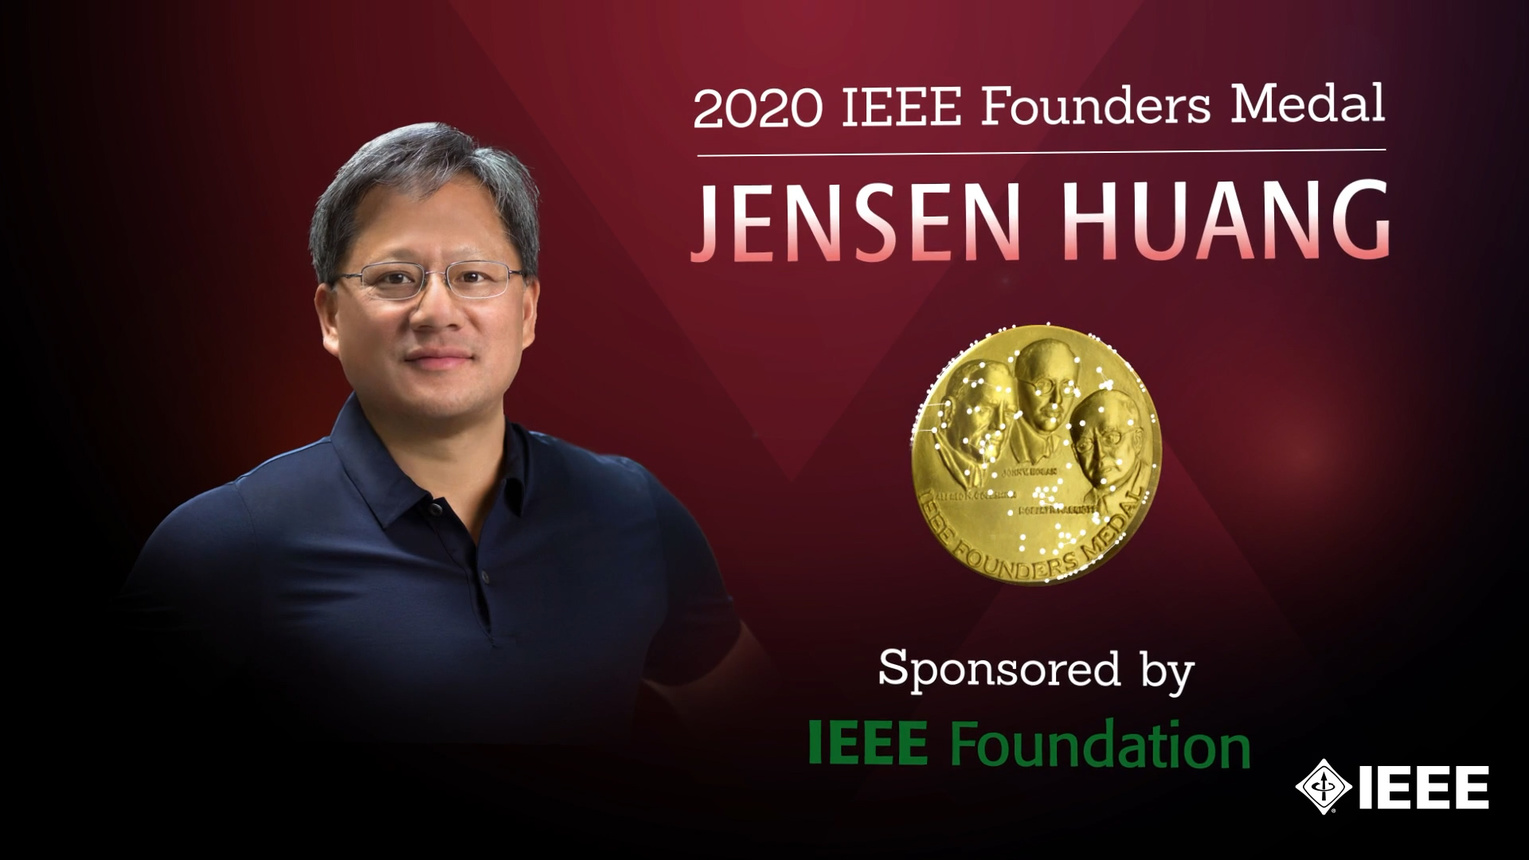 Honors 2020: Jensen Huang Wins the IEEE Founders Medal